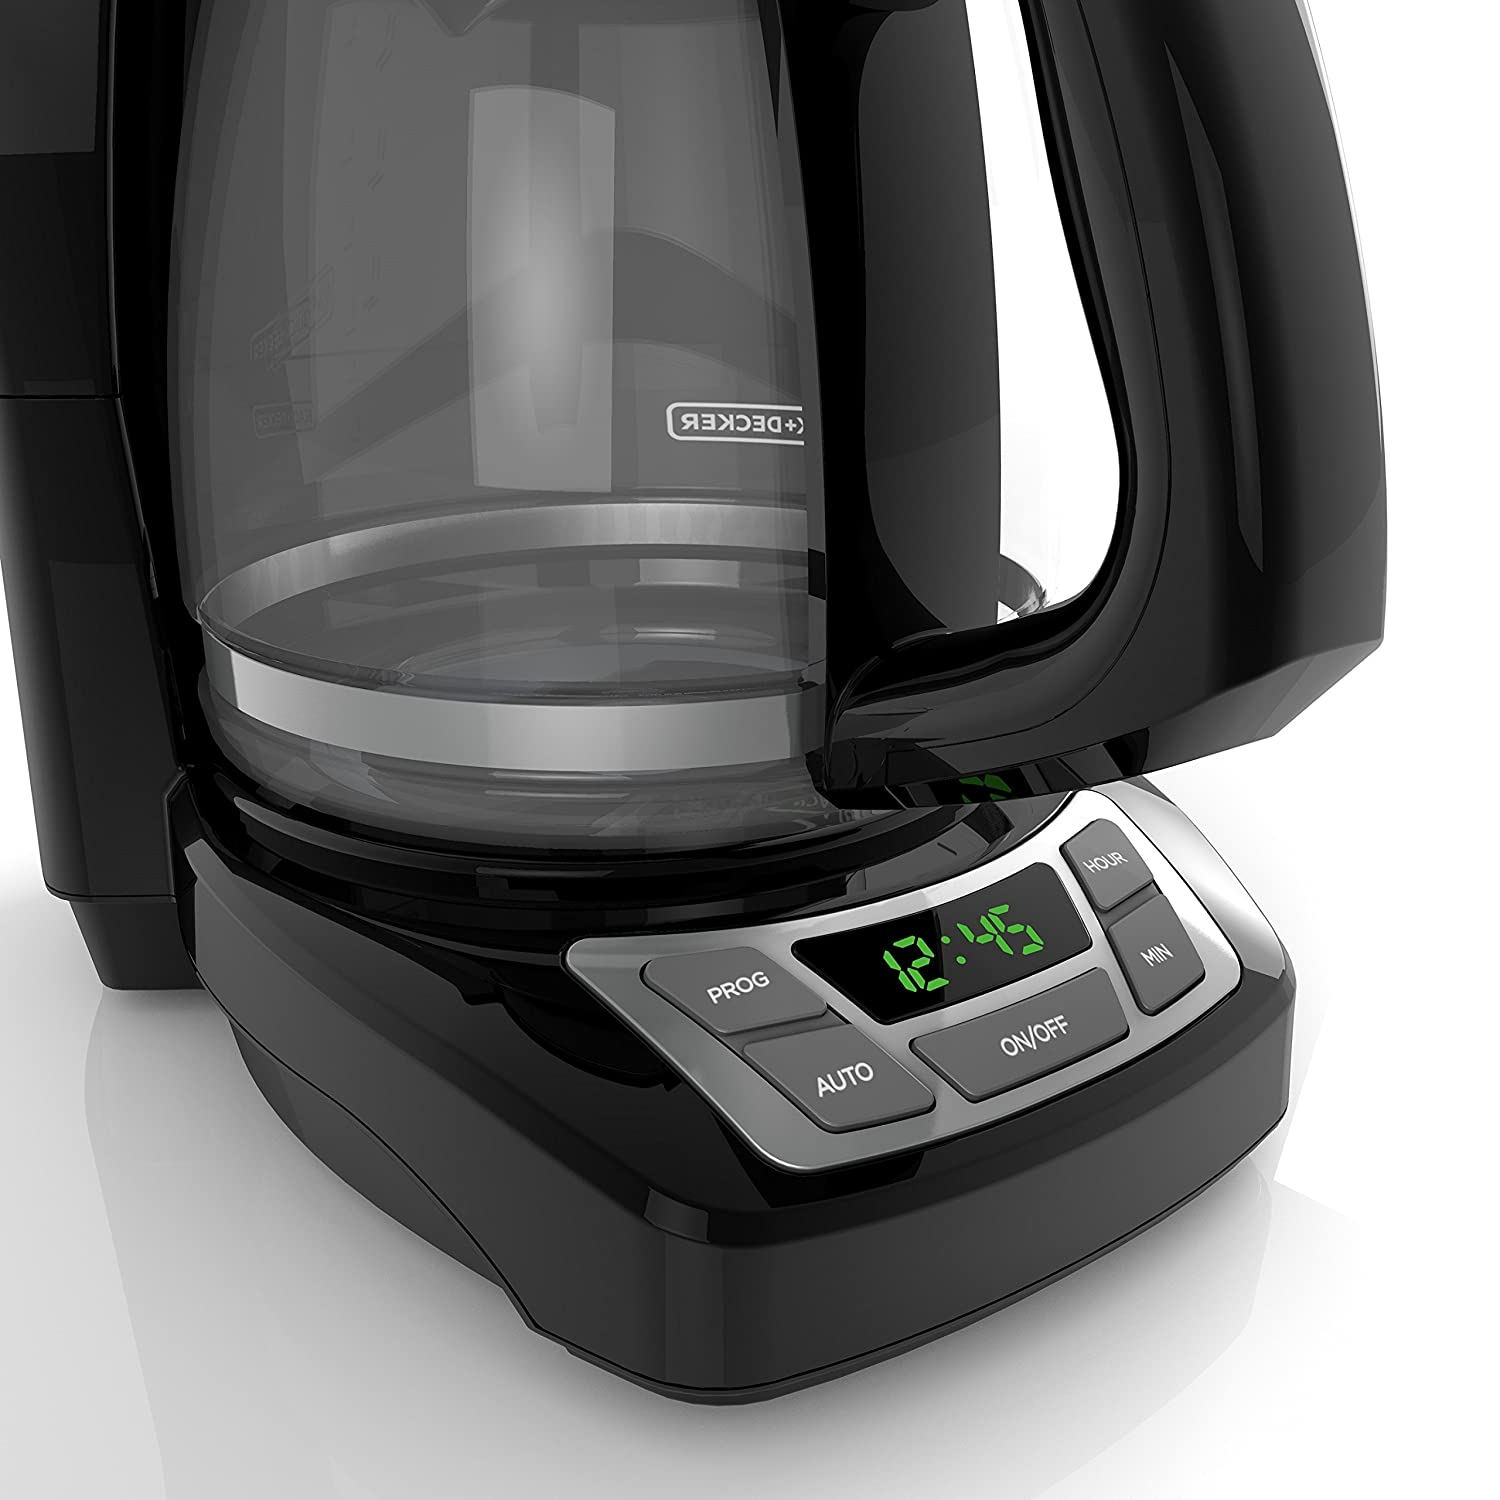 Black and decker 12 cup programmable coffee maker - Black Decker Cm1160b 12 Cup Programmable Coffee Maker